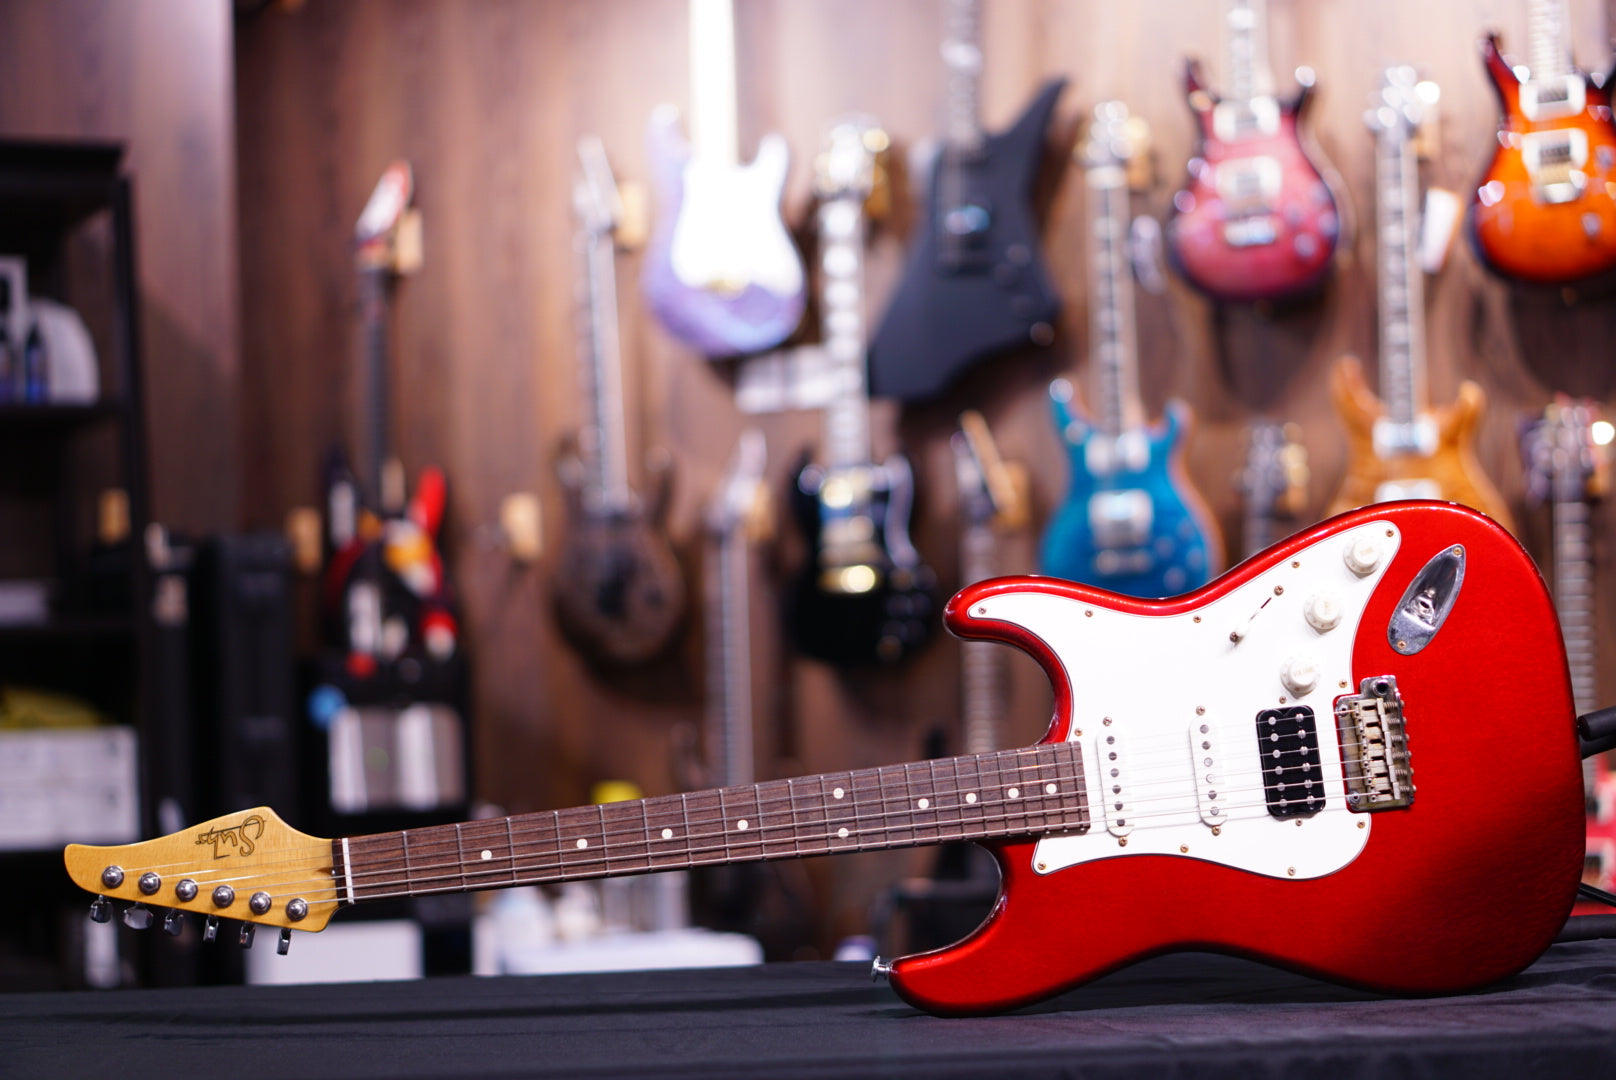 Suhr Classic Antique Metalic Candy Apple Red Js7U4Z SUHR - HIENDGUITAR.COM